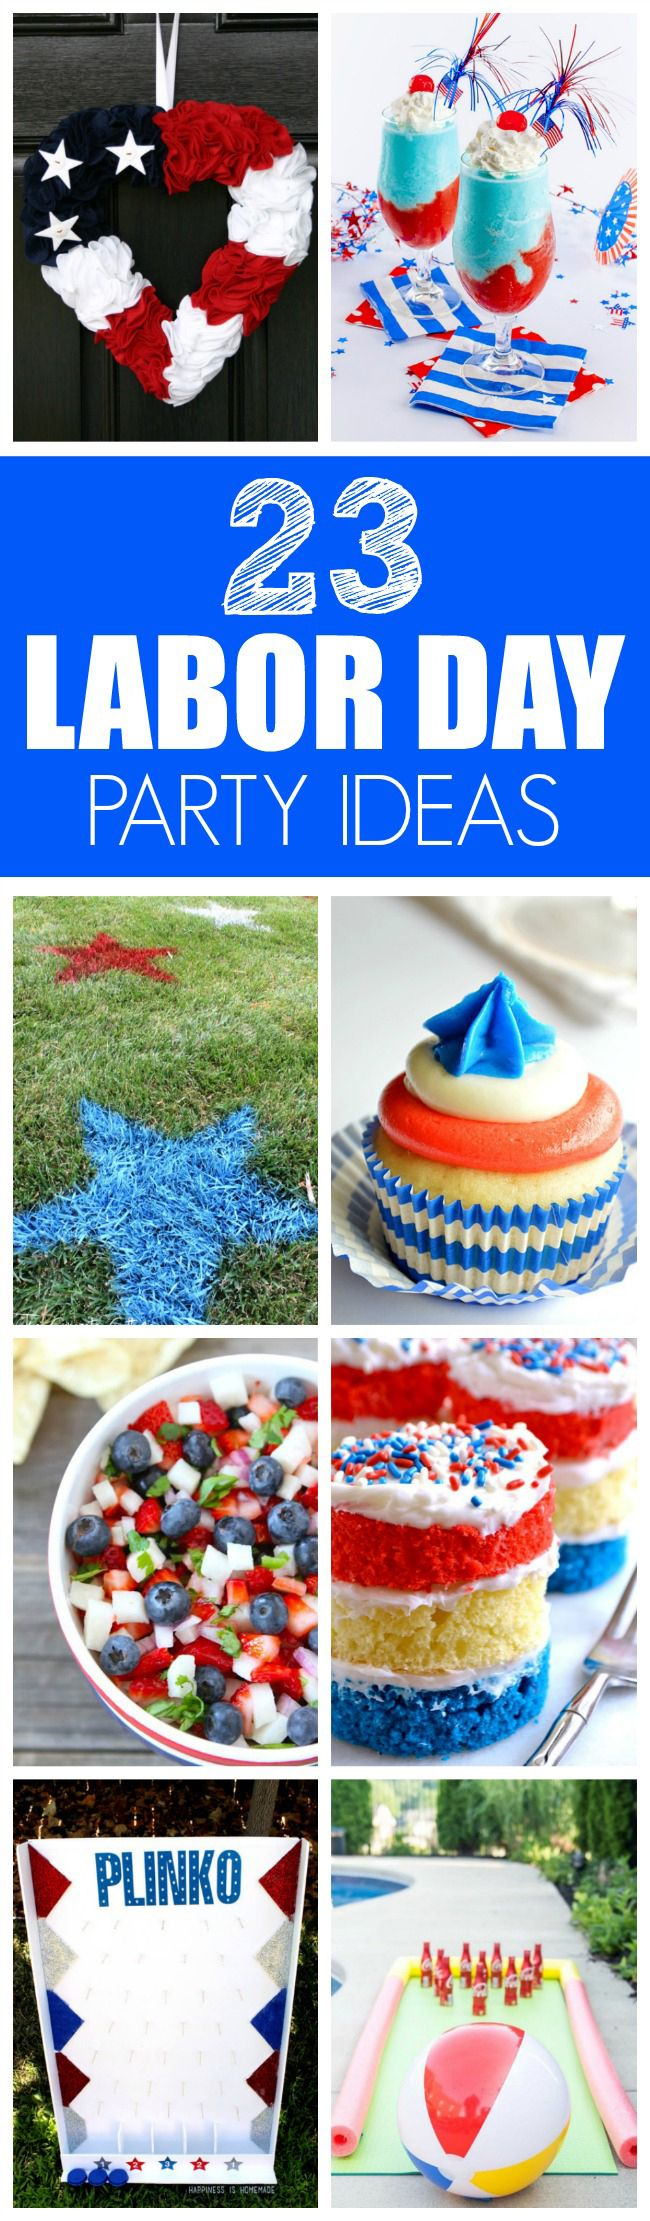 23 Perfect Labor Day Party Ideas